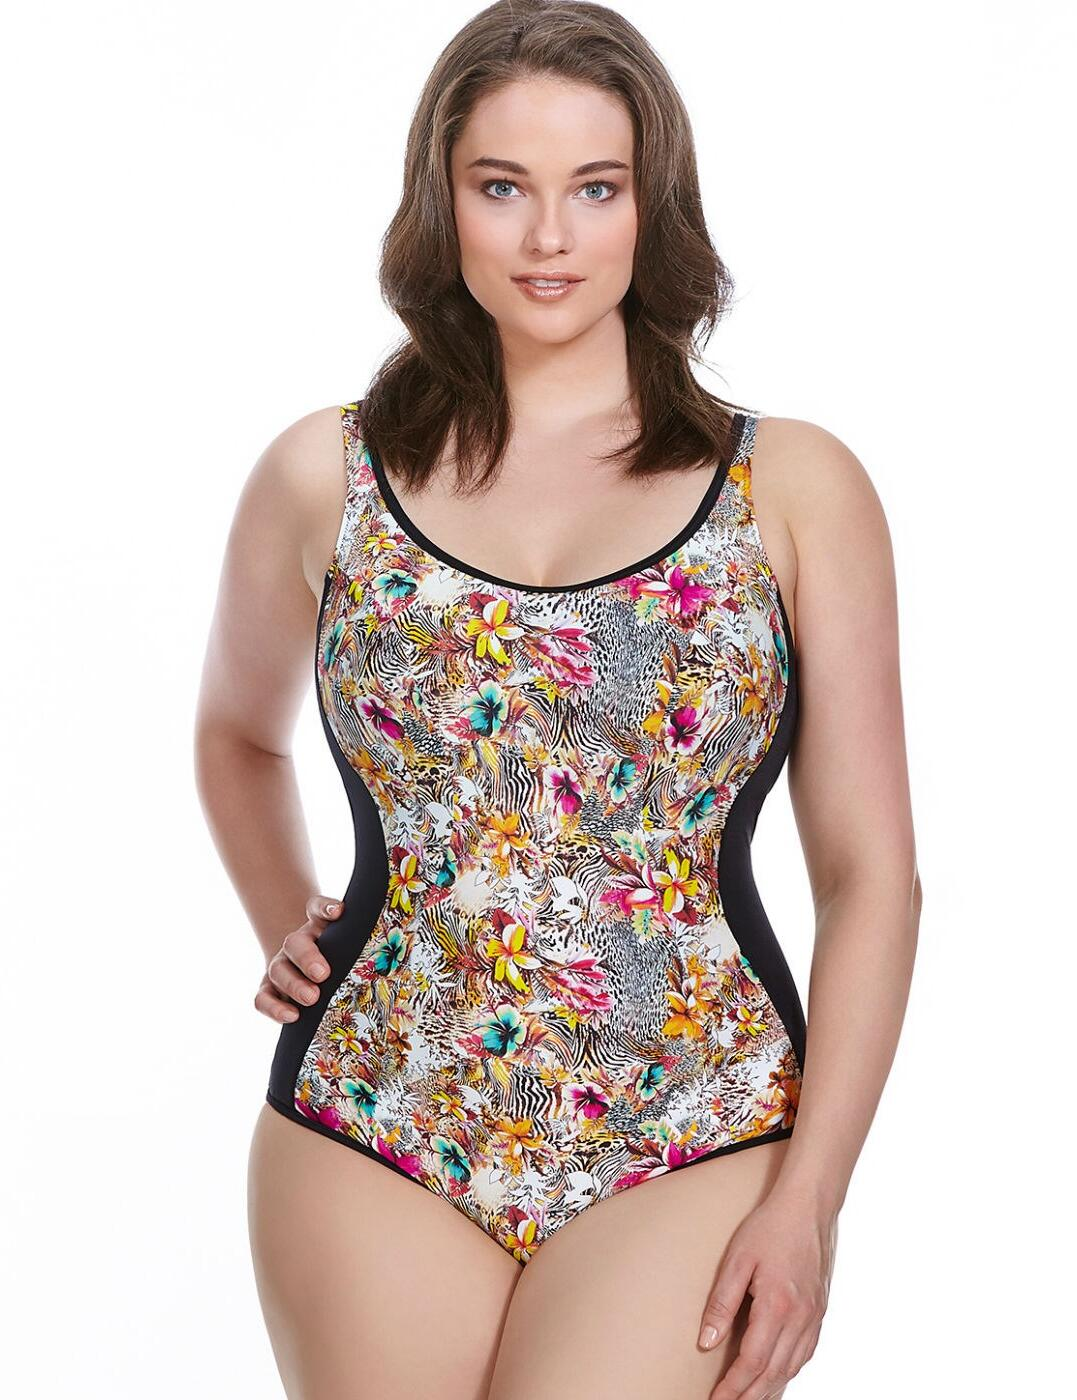 7520 Elomi Fly Free Moulded Swimsuit  - 7520 Black